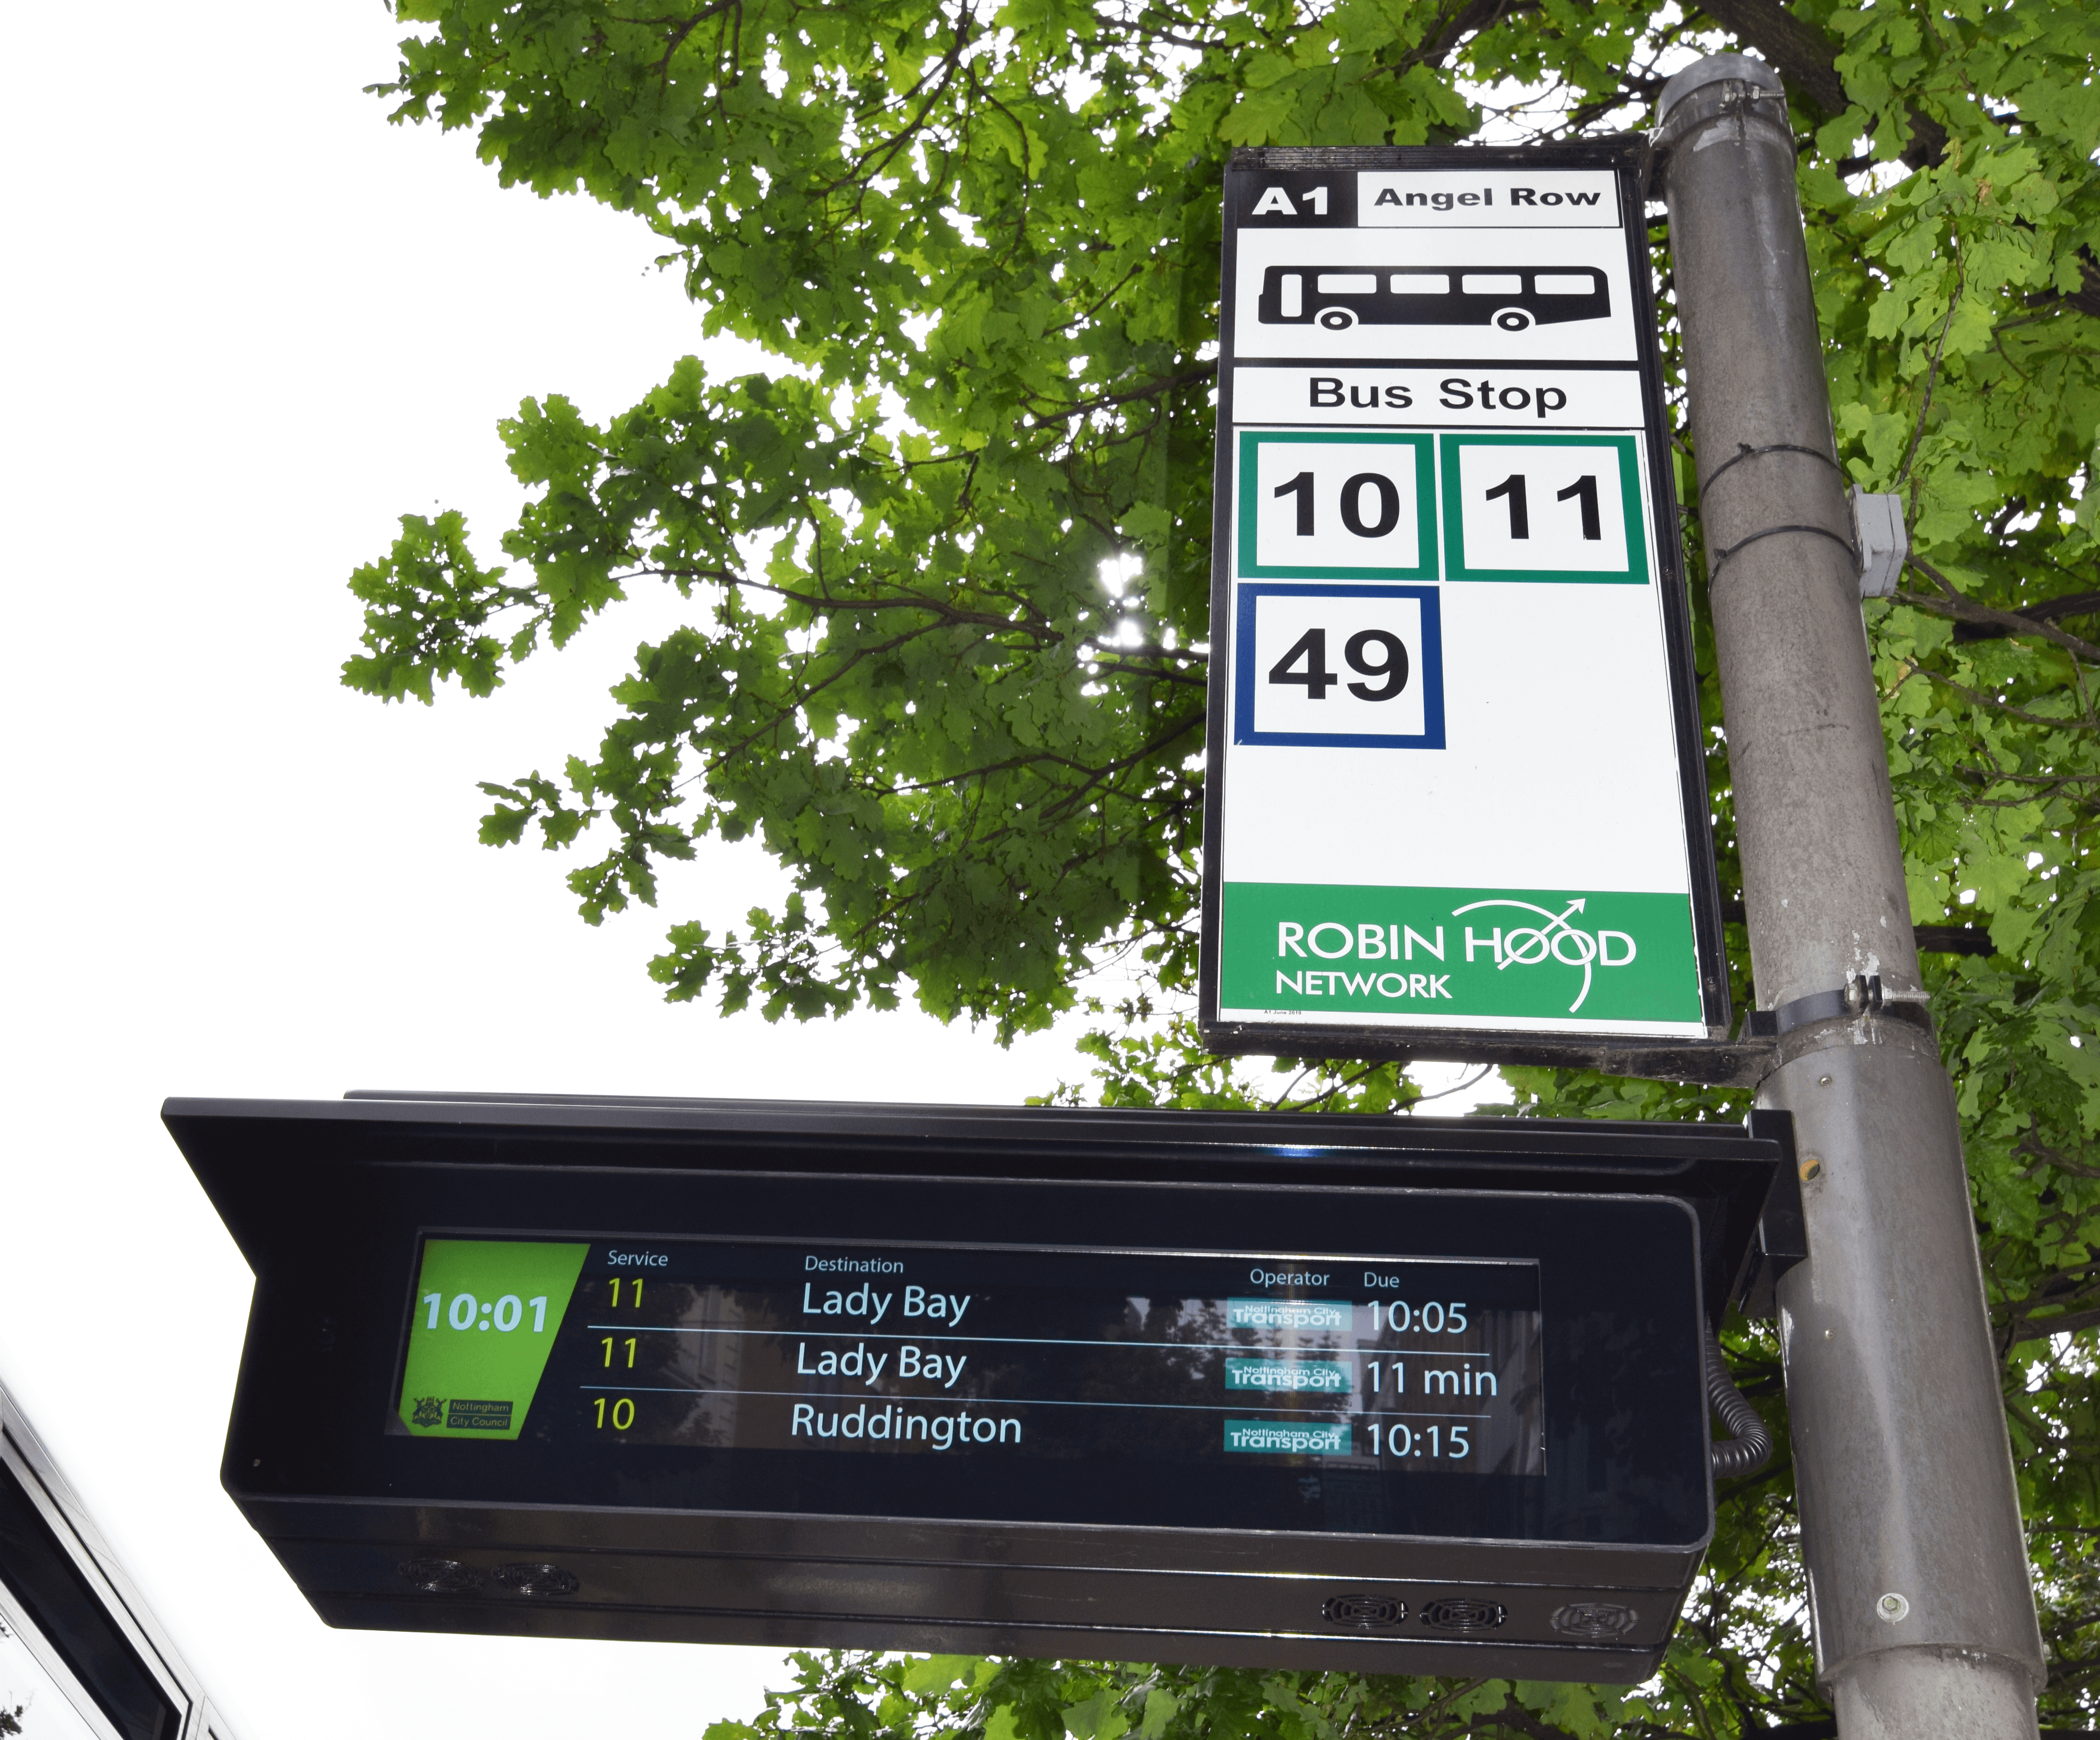 A1 bus stop and new real time sign on Angel Row, Nottingham